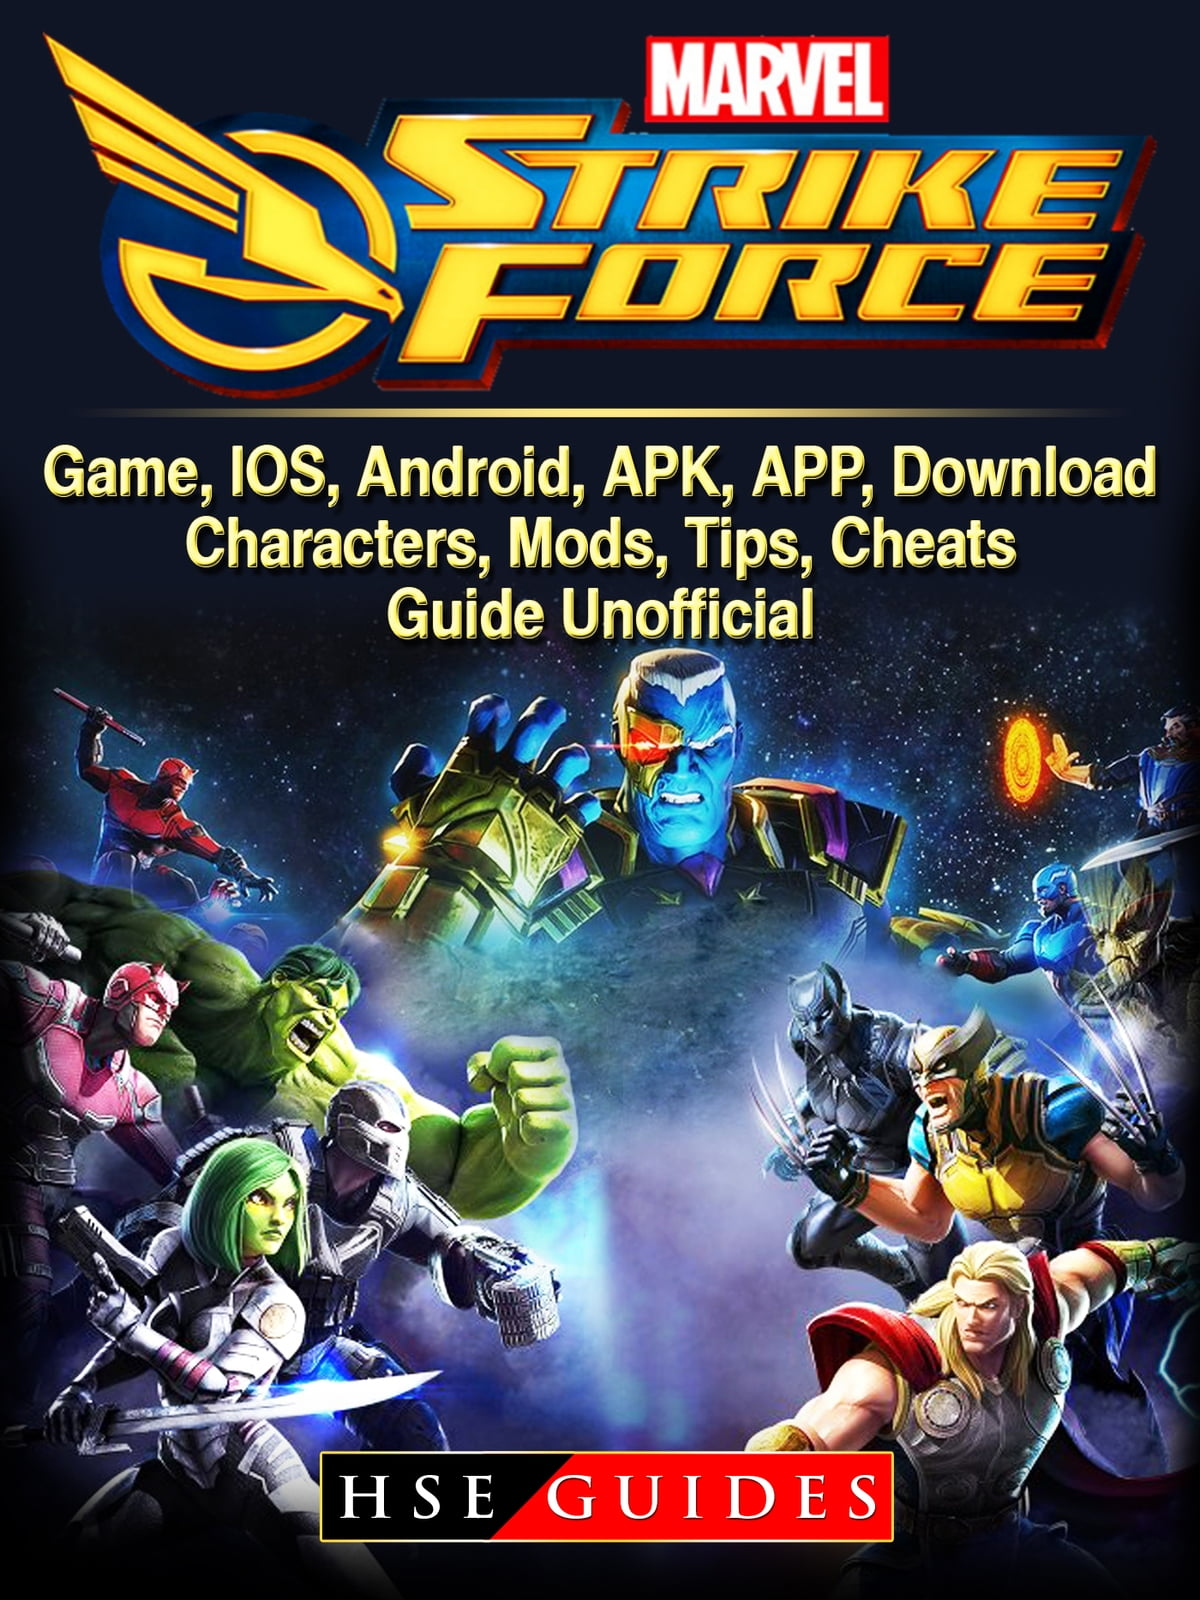 Marvel Strike Force Game, IOS, Android, APK, APP, Download, Characters,  Mods, Tips, Cheats, Guide Unofficial ebook by Hse Guides - Rakuten Kobo